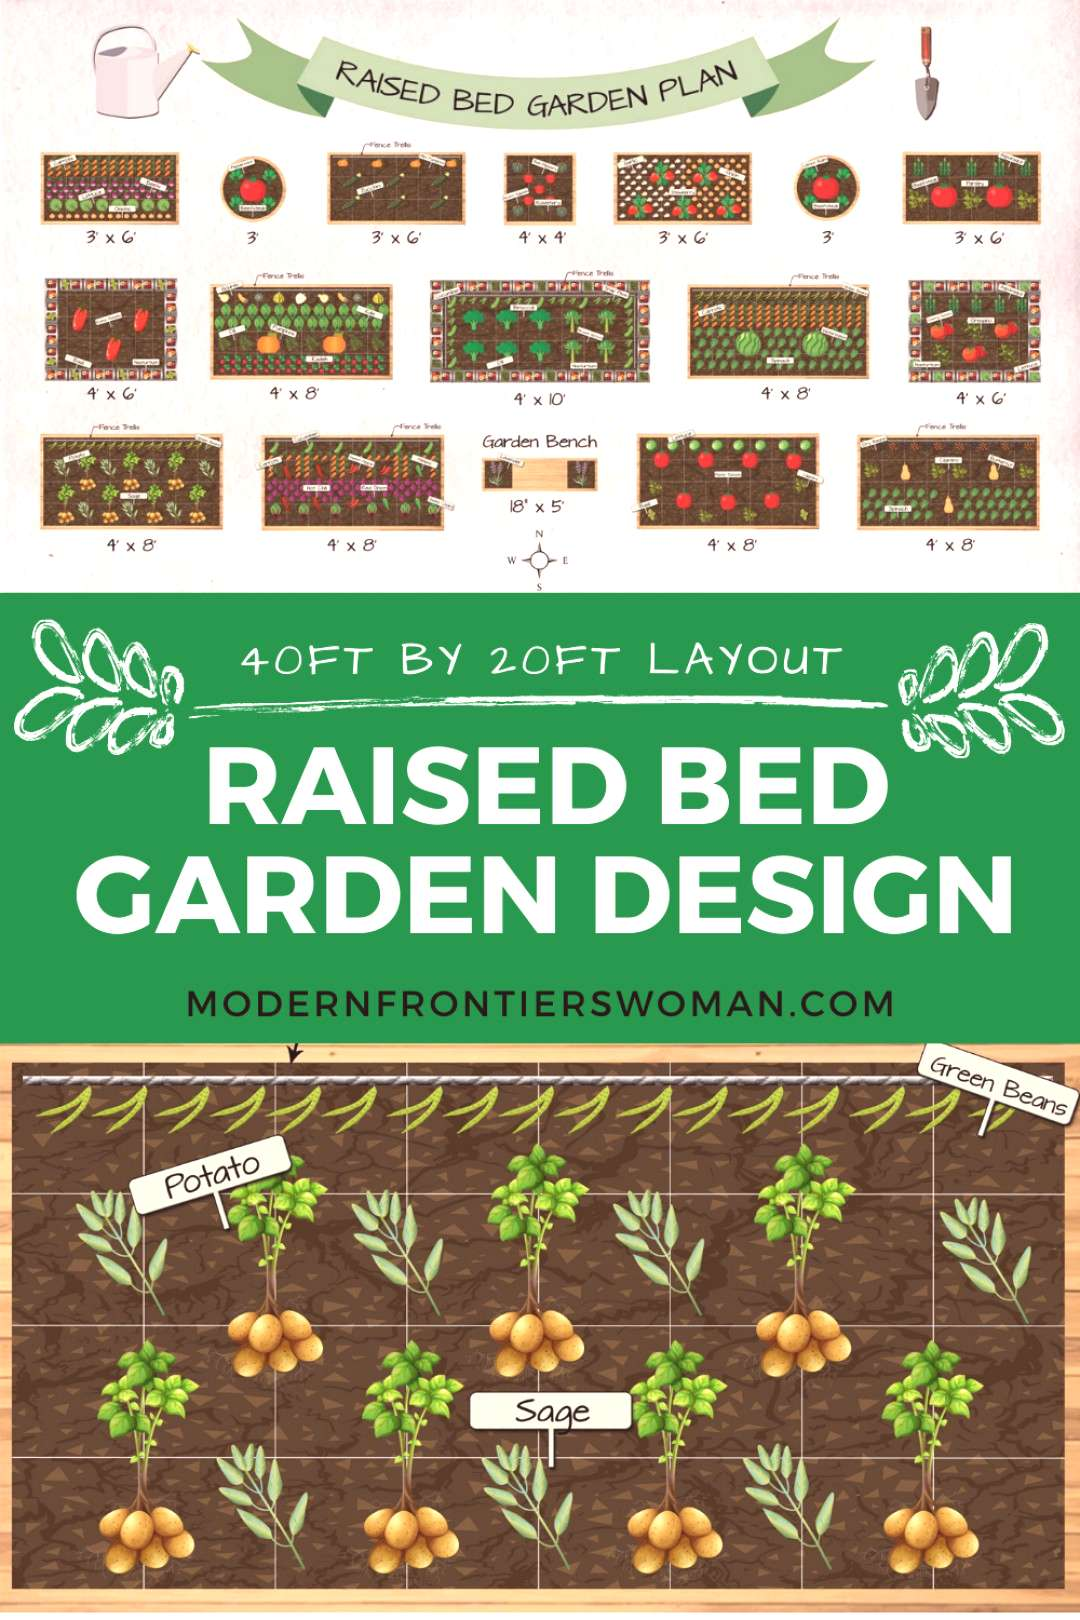 Raised Bed Vegetable Garden Plan | Modern Frontierswoman -  This garden layout will give you inspir